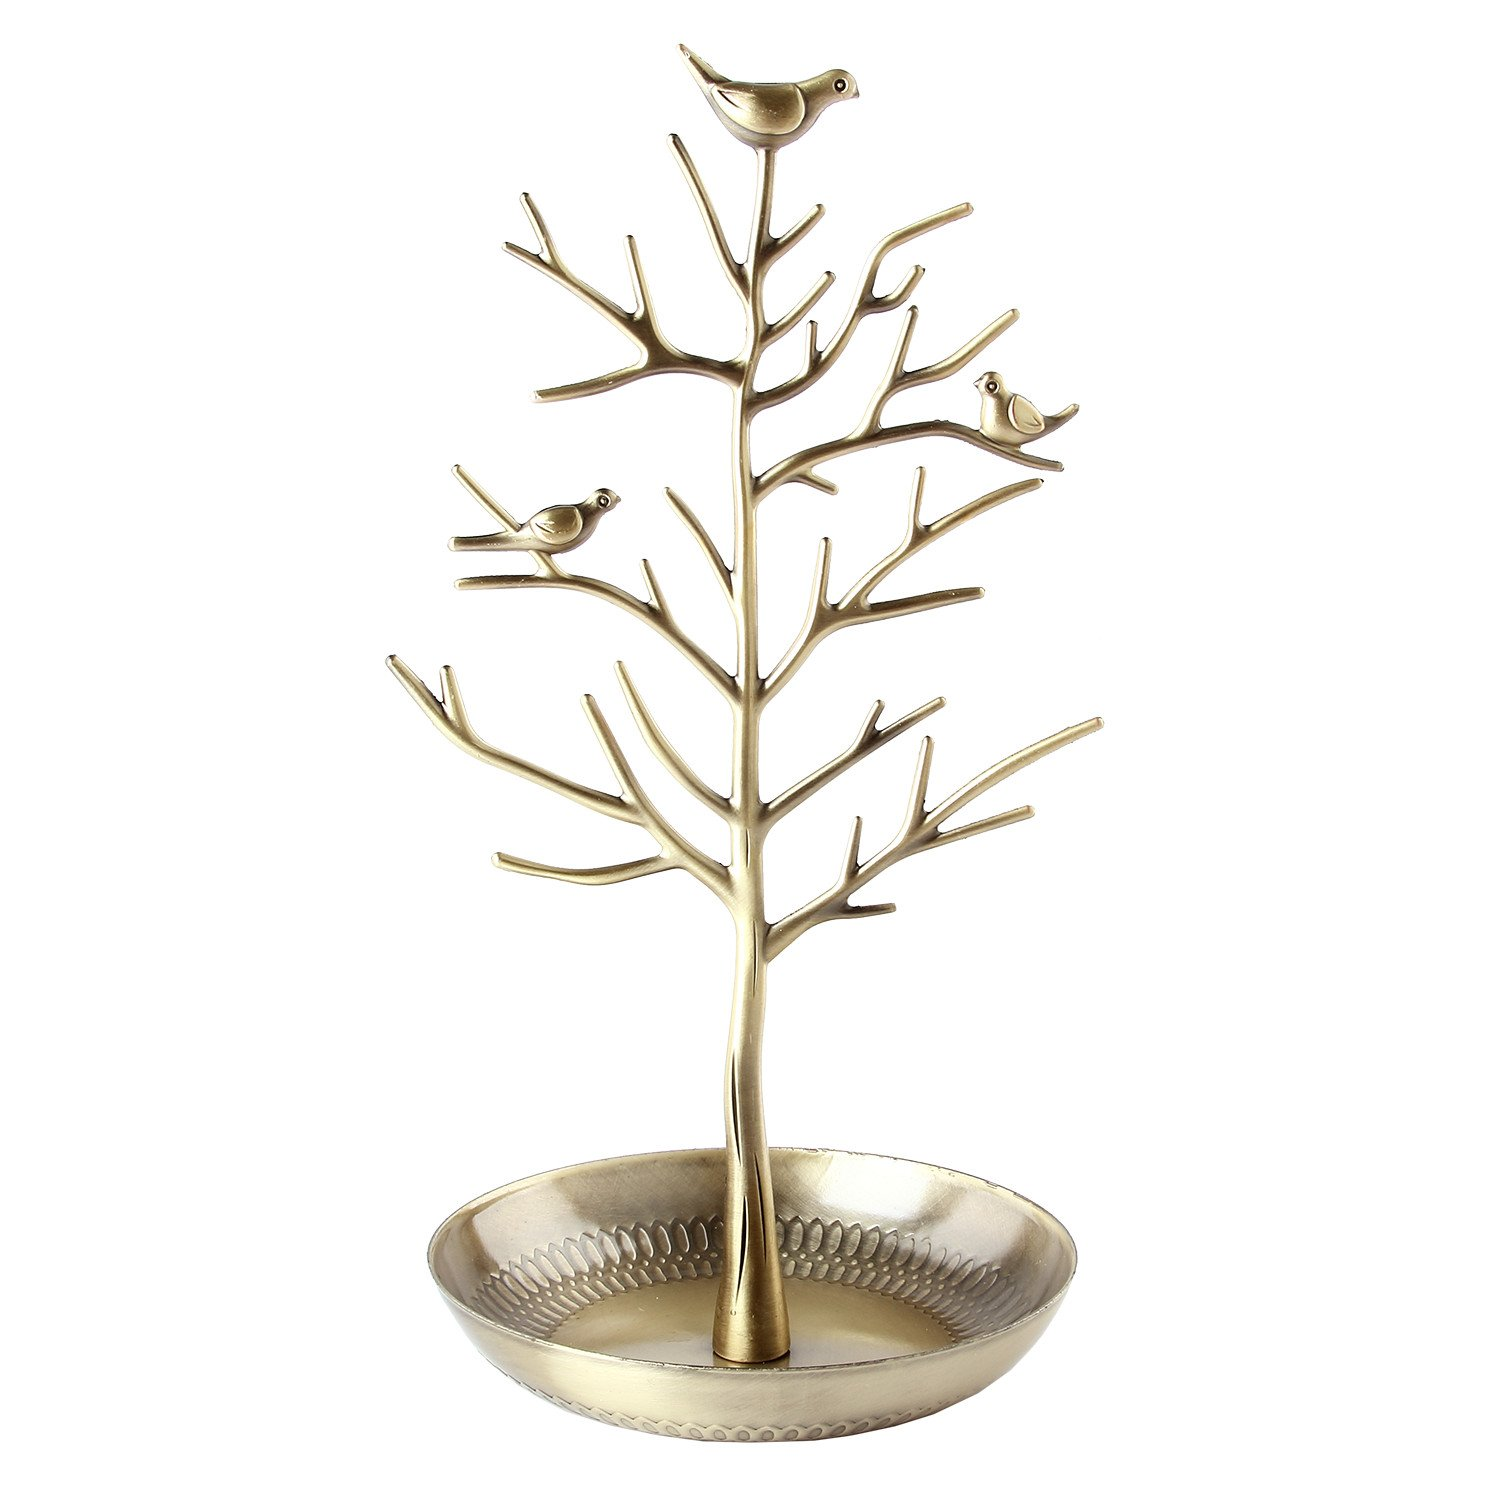 Discoball Jewellery Display/Stand/Holder - New Antique Silver Bronze Birds Tree Earring Necklace Bracelets Jewelry Holders Hanging Organiser Rack Tower 51640